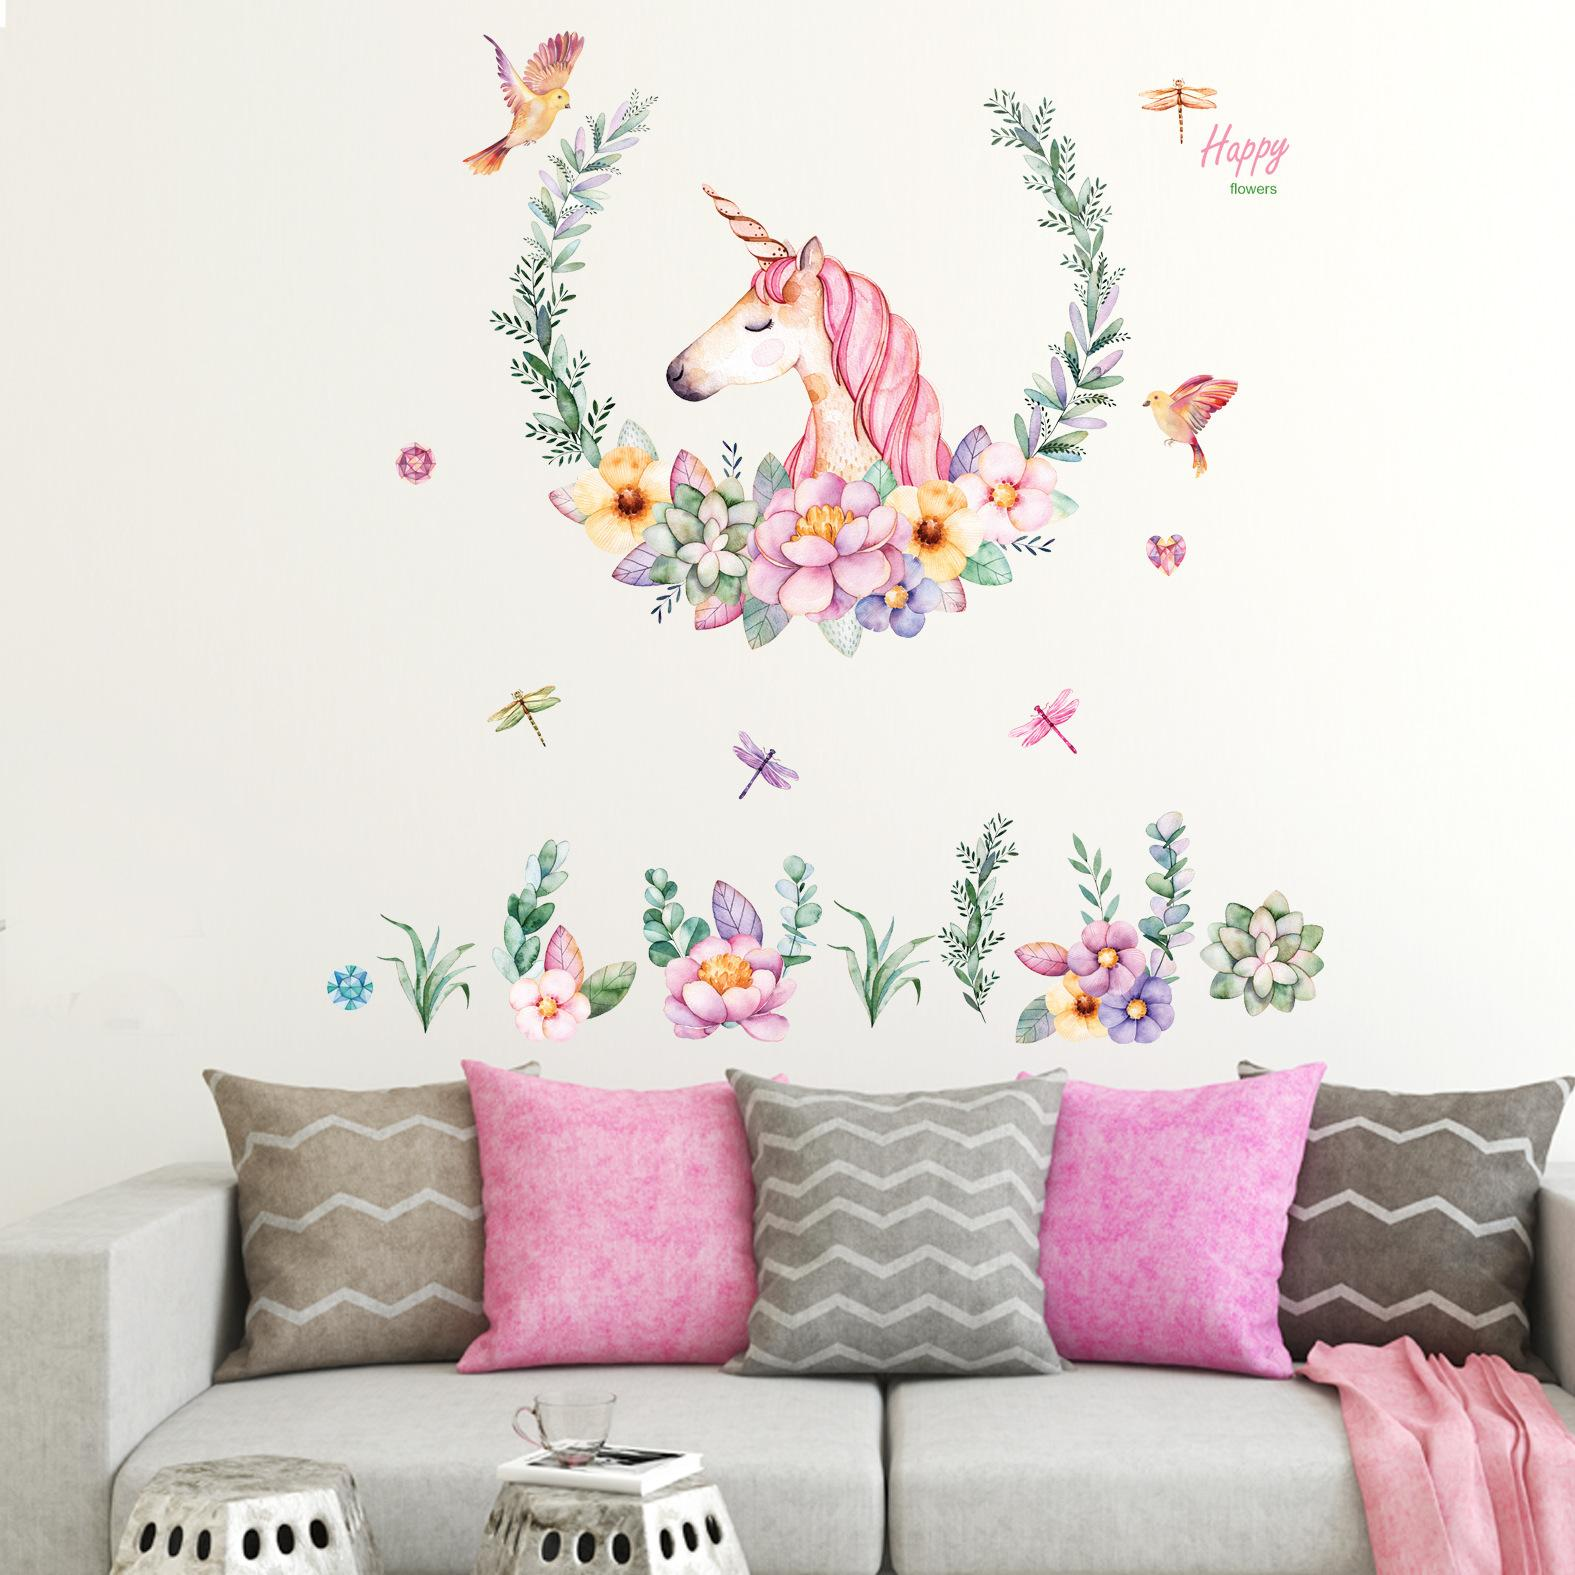 Unicorn Wall Sticker For Bedroom Baby Room Decoration Cartoon Wall Sticker  PVC Stickers Home Decor AAA1430 Kids Wall Decorations Room Wall Stickers  From ...